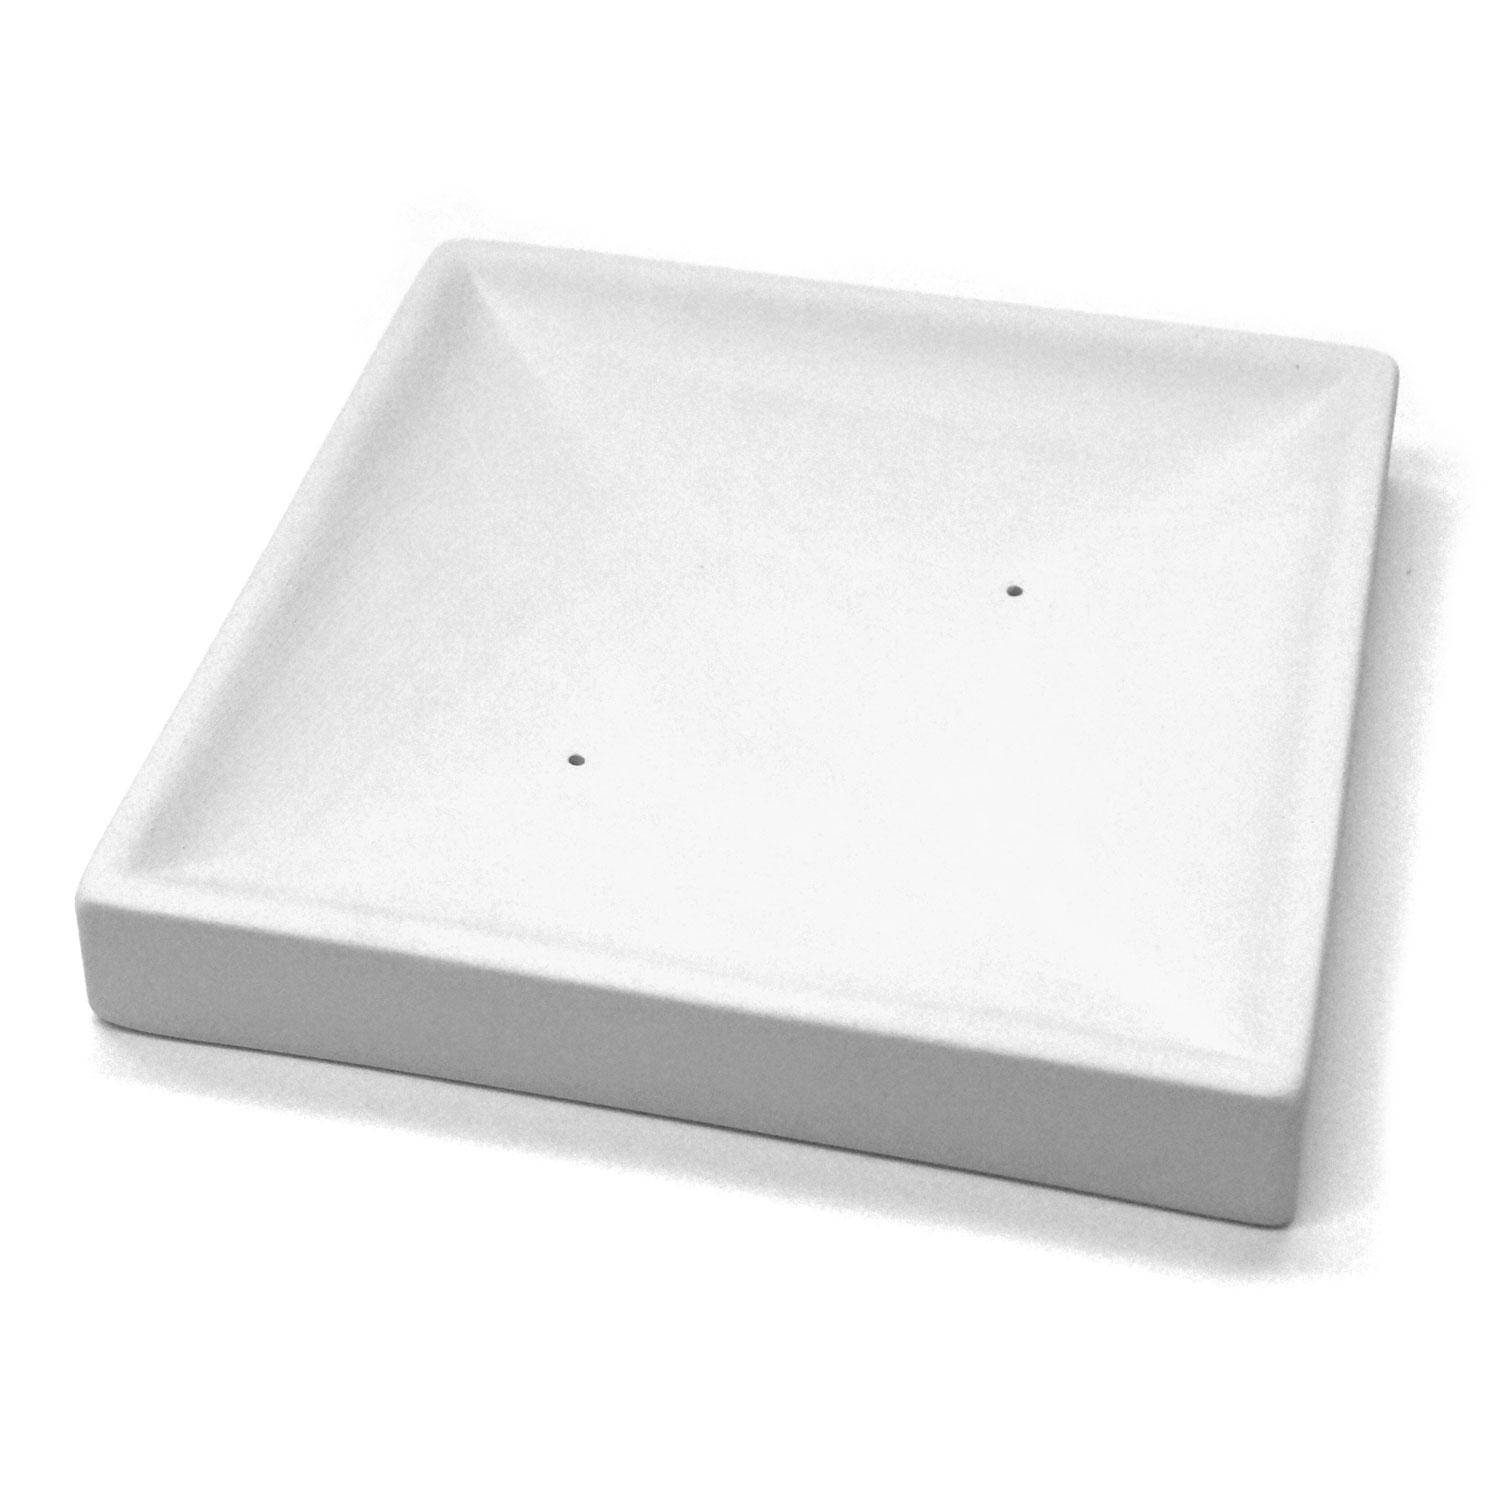 5-1/2 x 5-1/2 x 7/8 Square Small Nesting Plate Mold